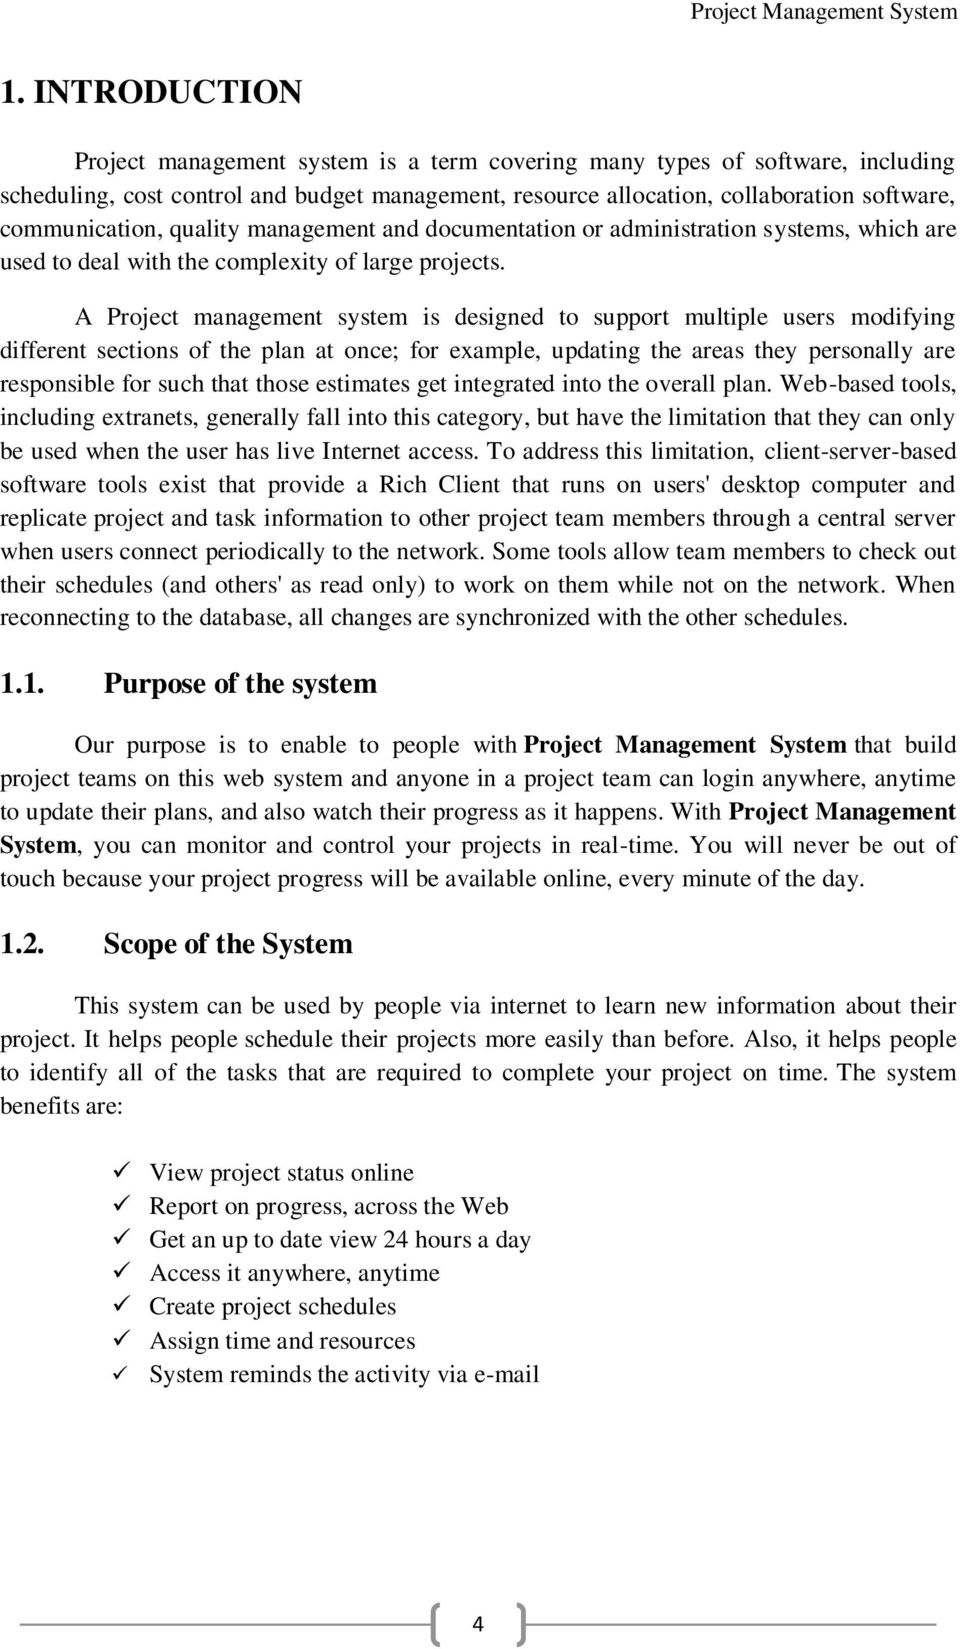 A Project management system is designed to support multiple users modifying different sections of the plan at once; for example, updating the areas they personally are responsible for such that those